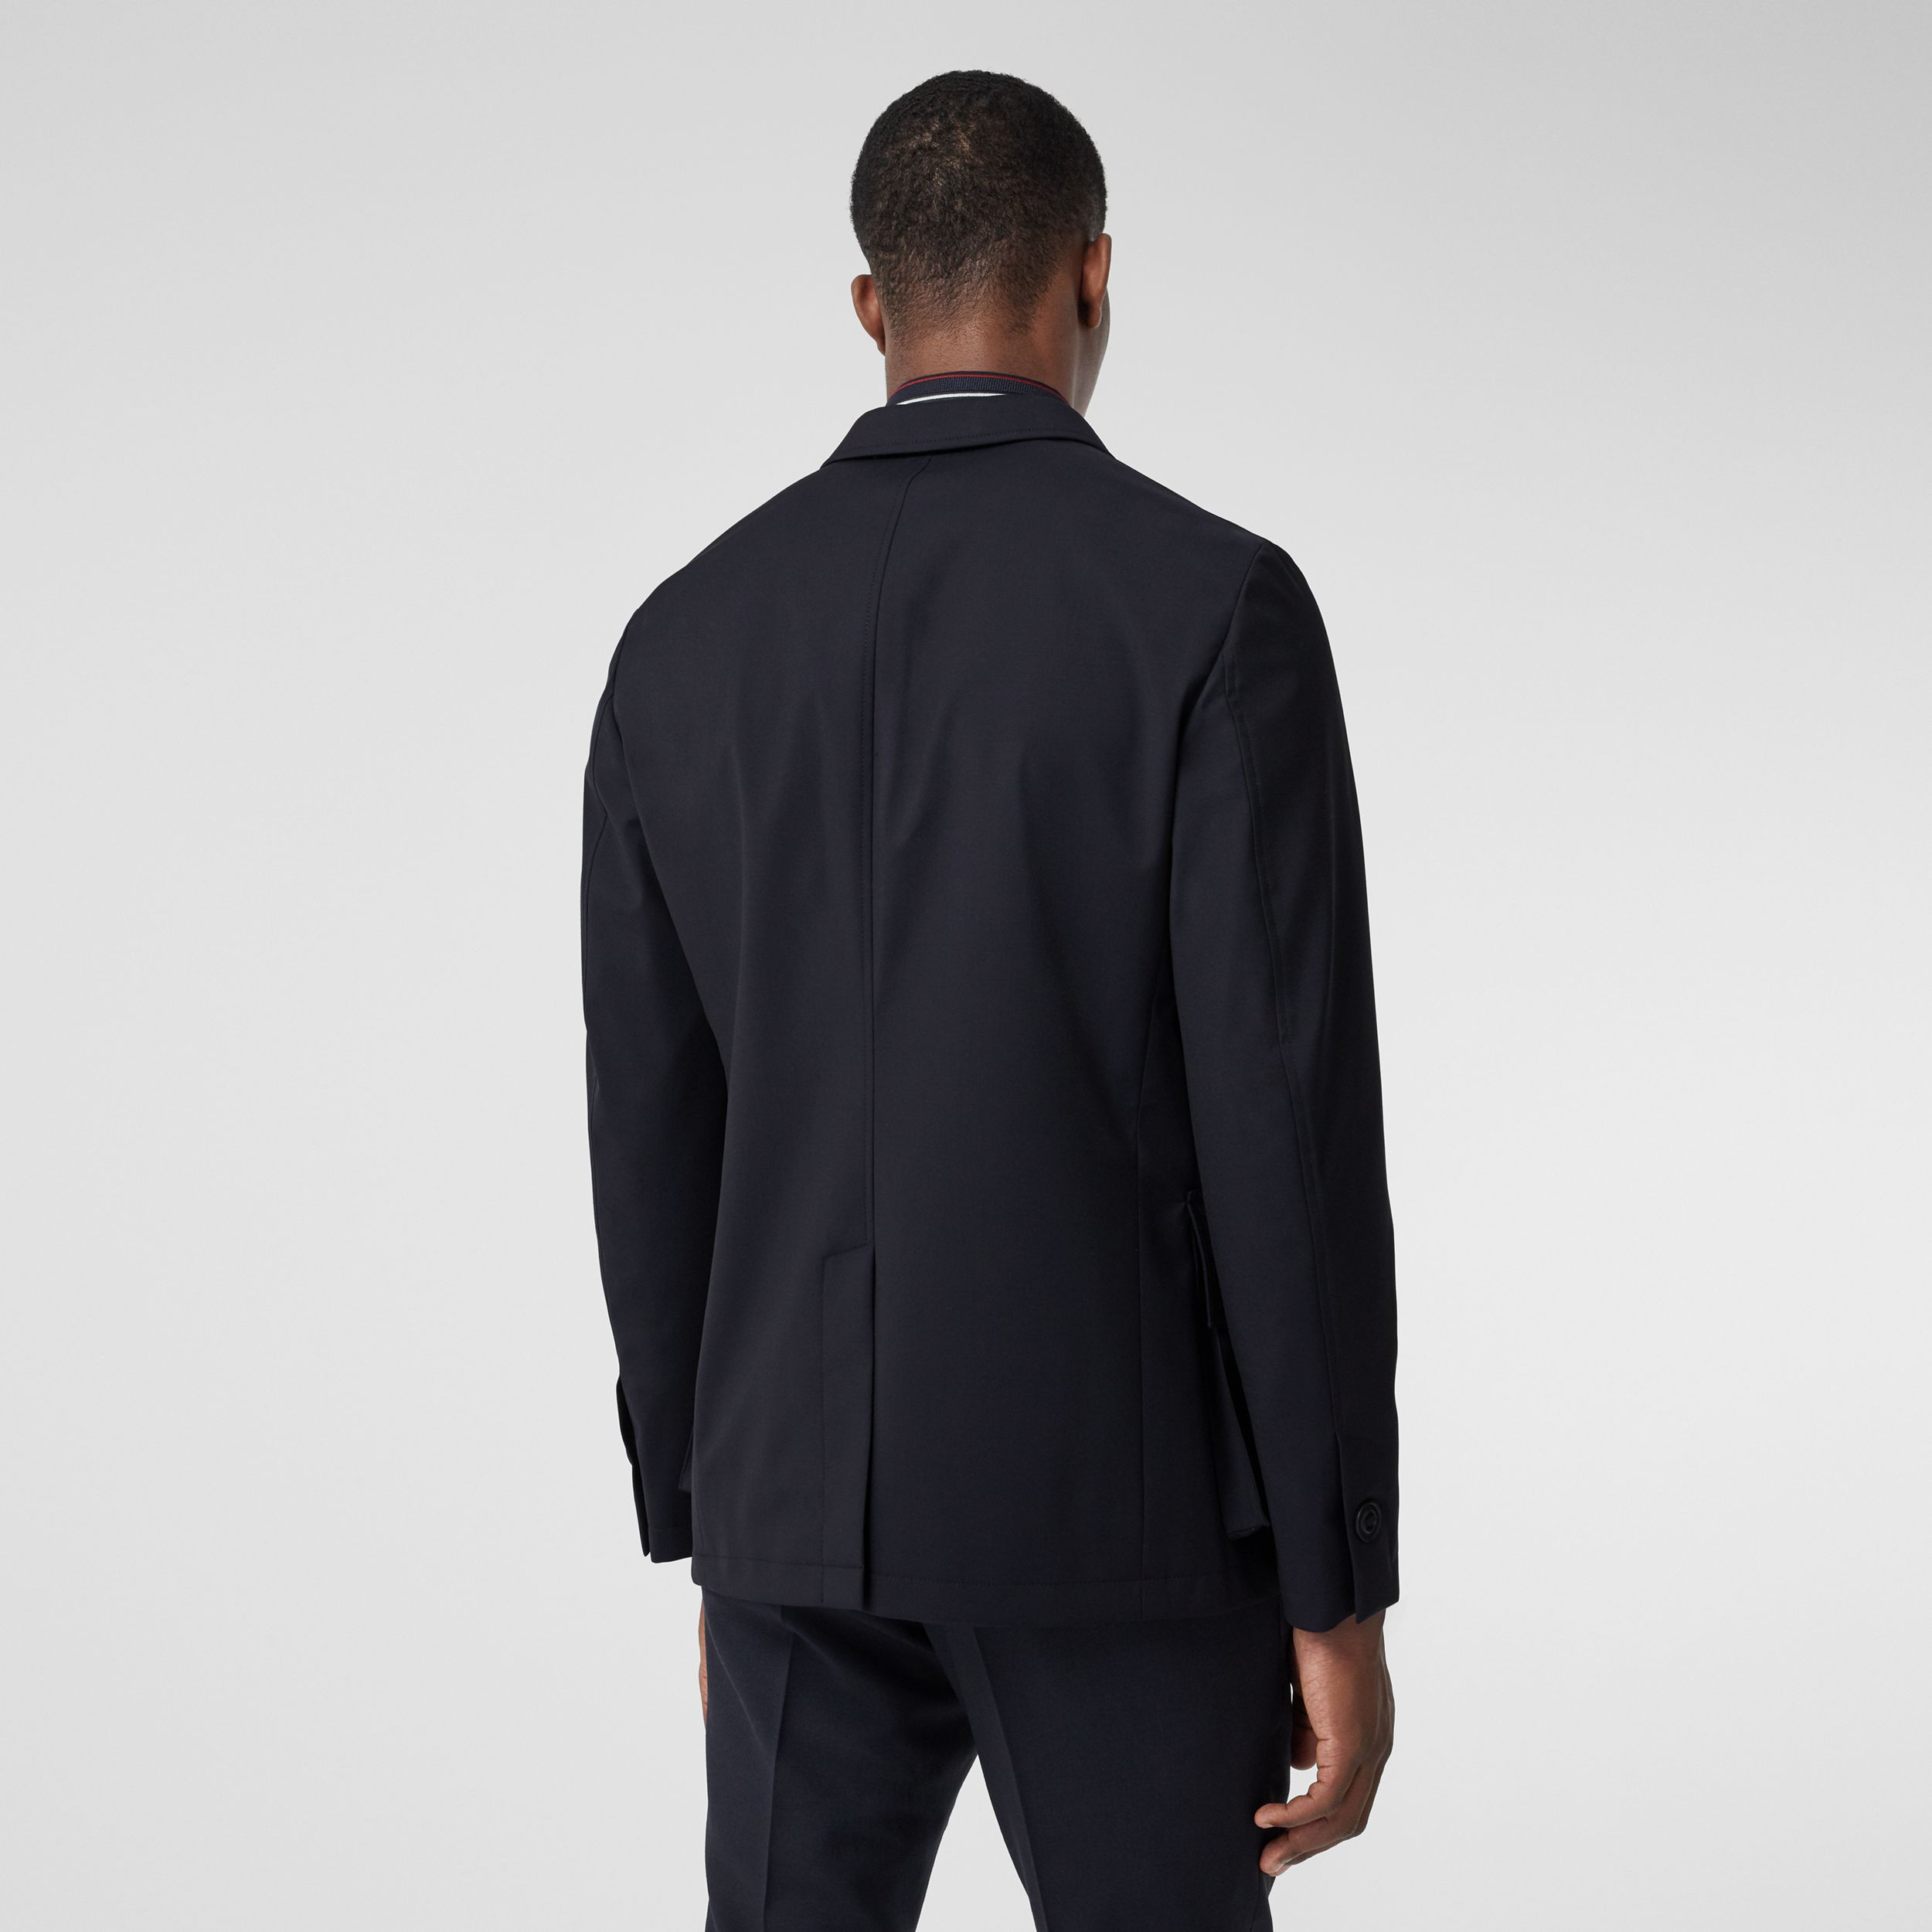 Bonded Wool Tailored Jacket in Navy - Men | Burberry Hong Kong S.A.R. - 3